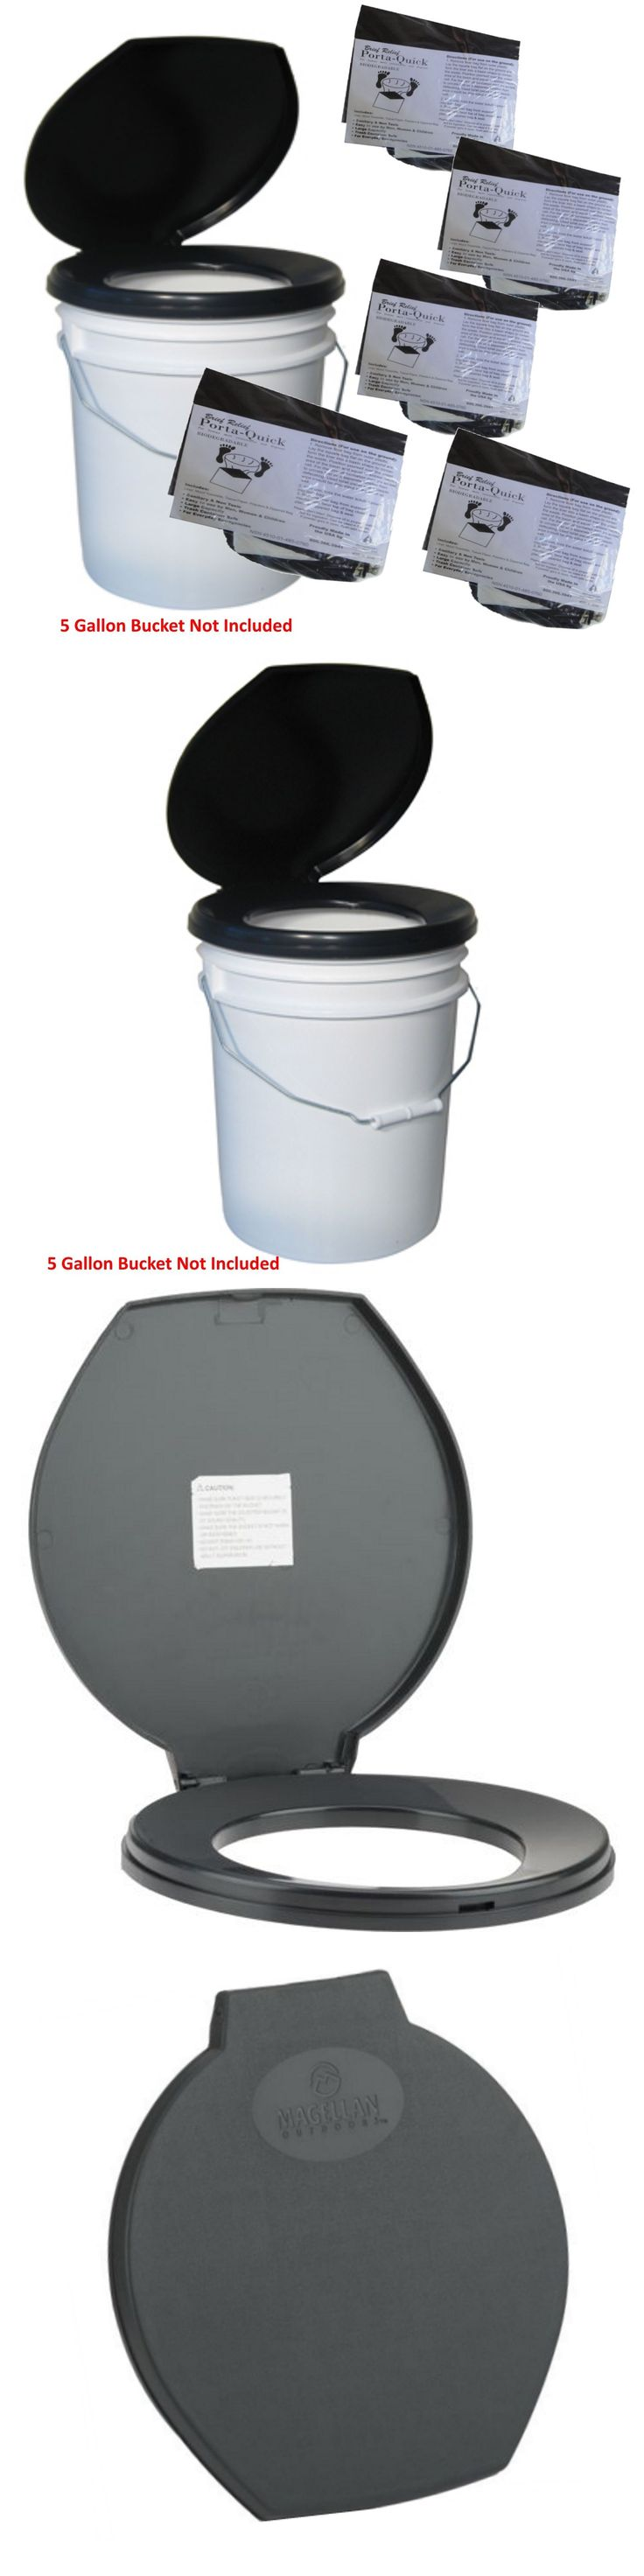 Portable Toilets and Accessories 181397: Bucket Toilet Seat And 20-Use Nasa Kits To Destroy, Deoderize, And Dispose Of Waste -> BUY IT NOW ONLY: $34.5 on eBay!